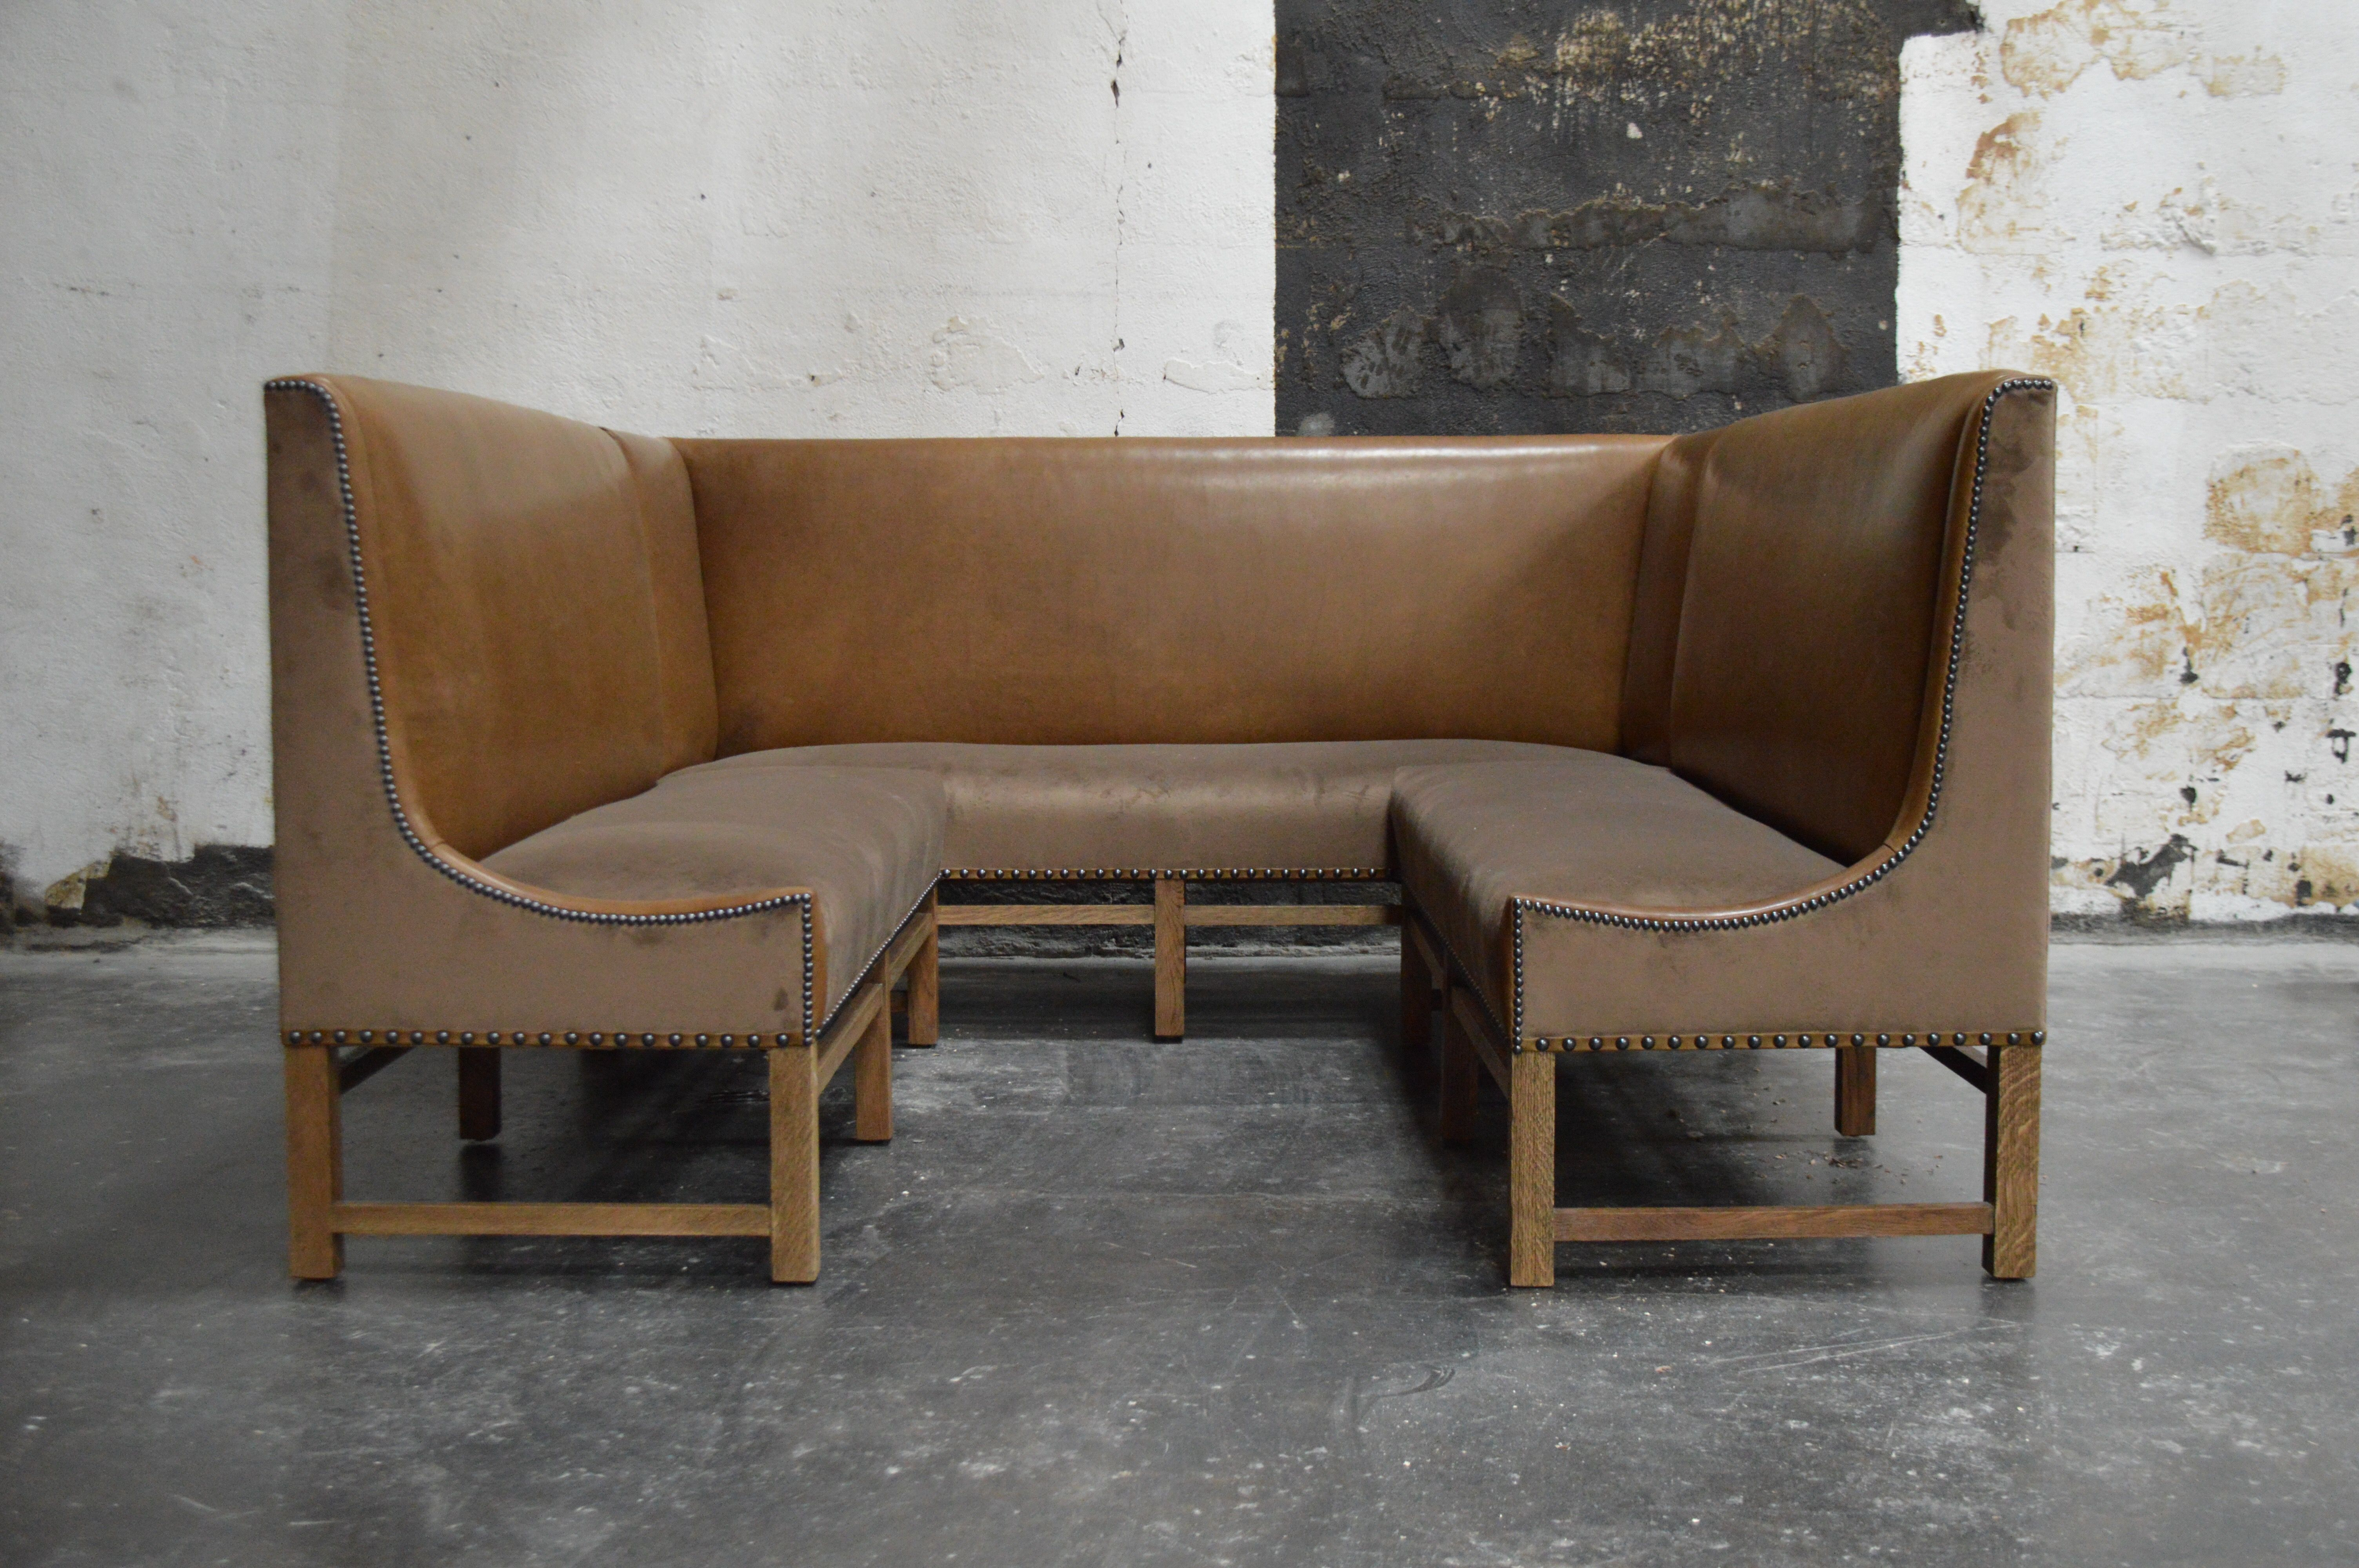 Banquette By Bjork Studio For Peace Design And Asd Sky